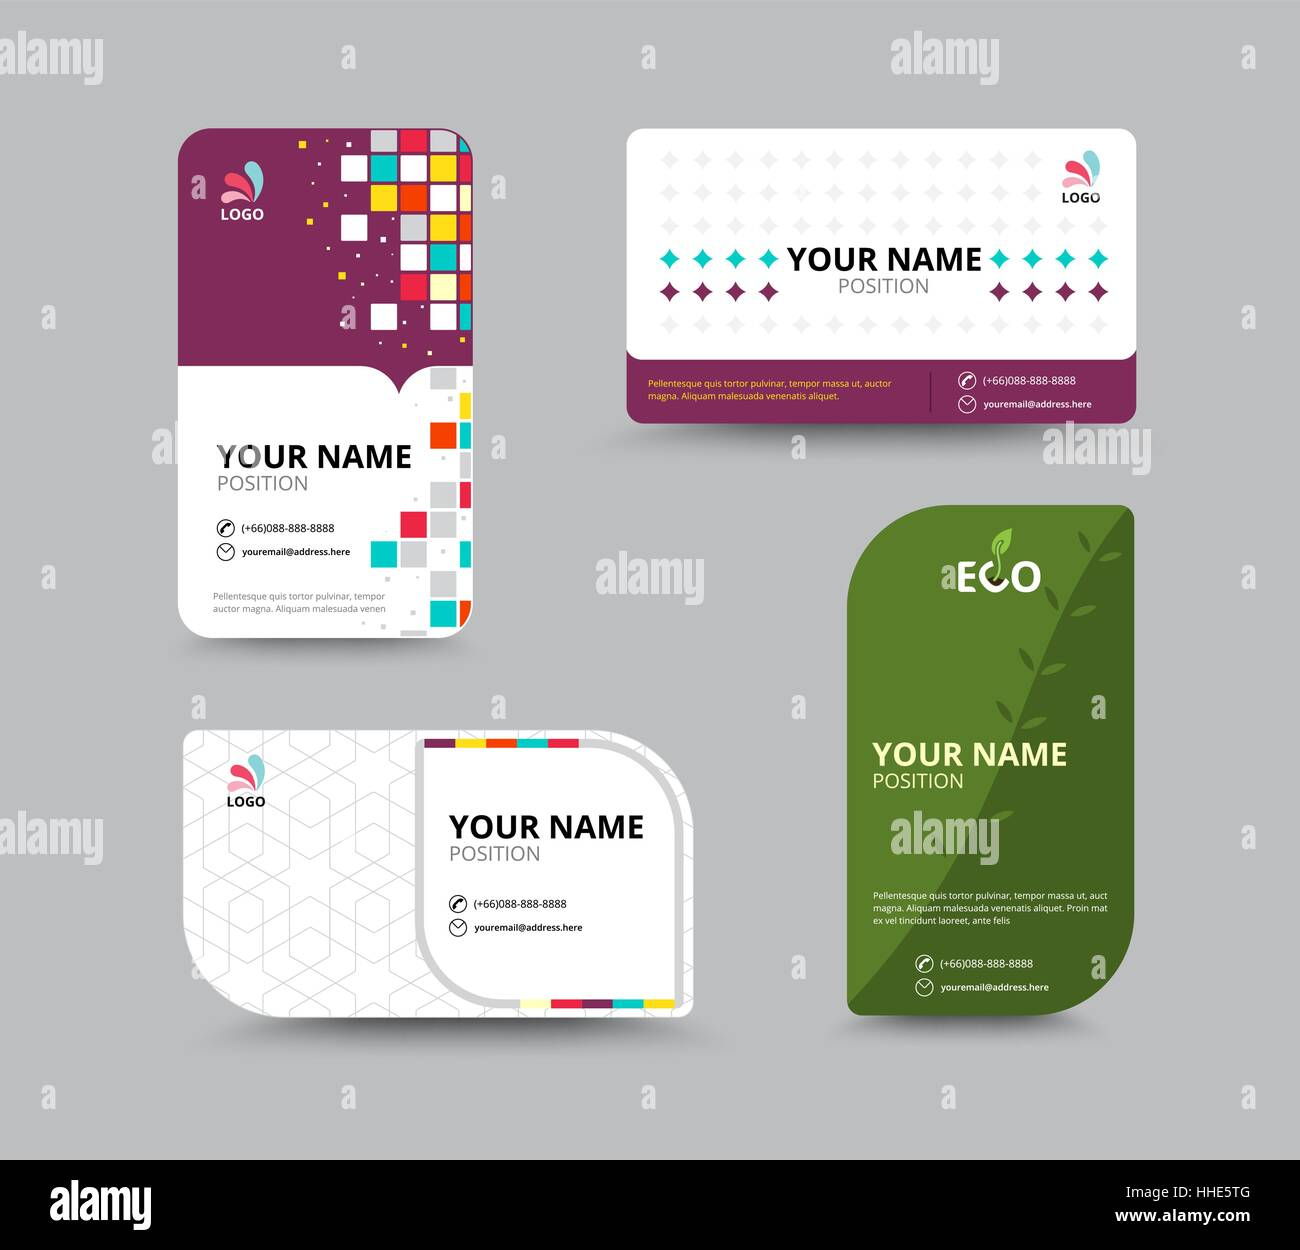 Contact card template business name card design set vector stock contact card template business name card design set vector illustration fbccfo